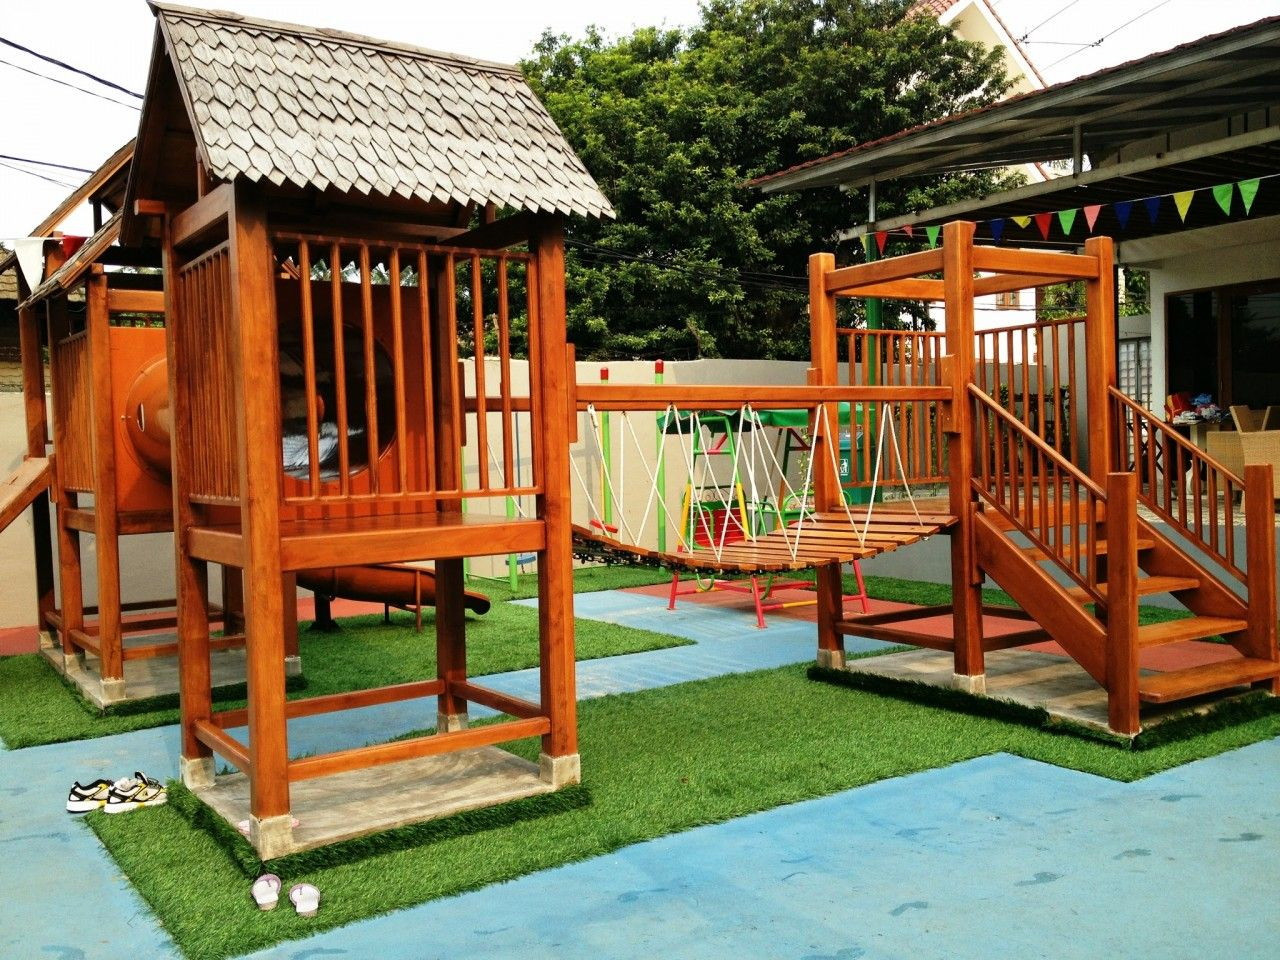 Ideas Awesome Backyard Playset With Swing Bridge And Slider Inspiring Design Beautiful Playhouse For Your Lovely Kids